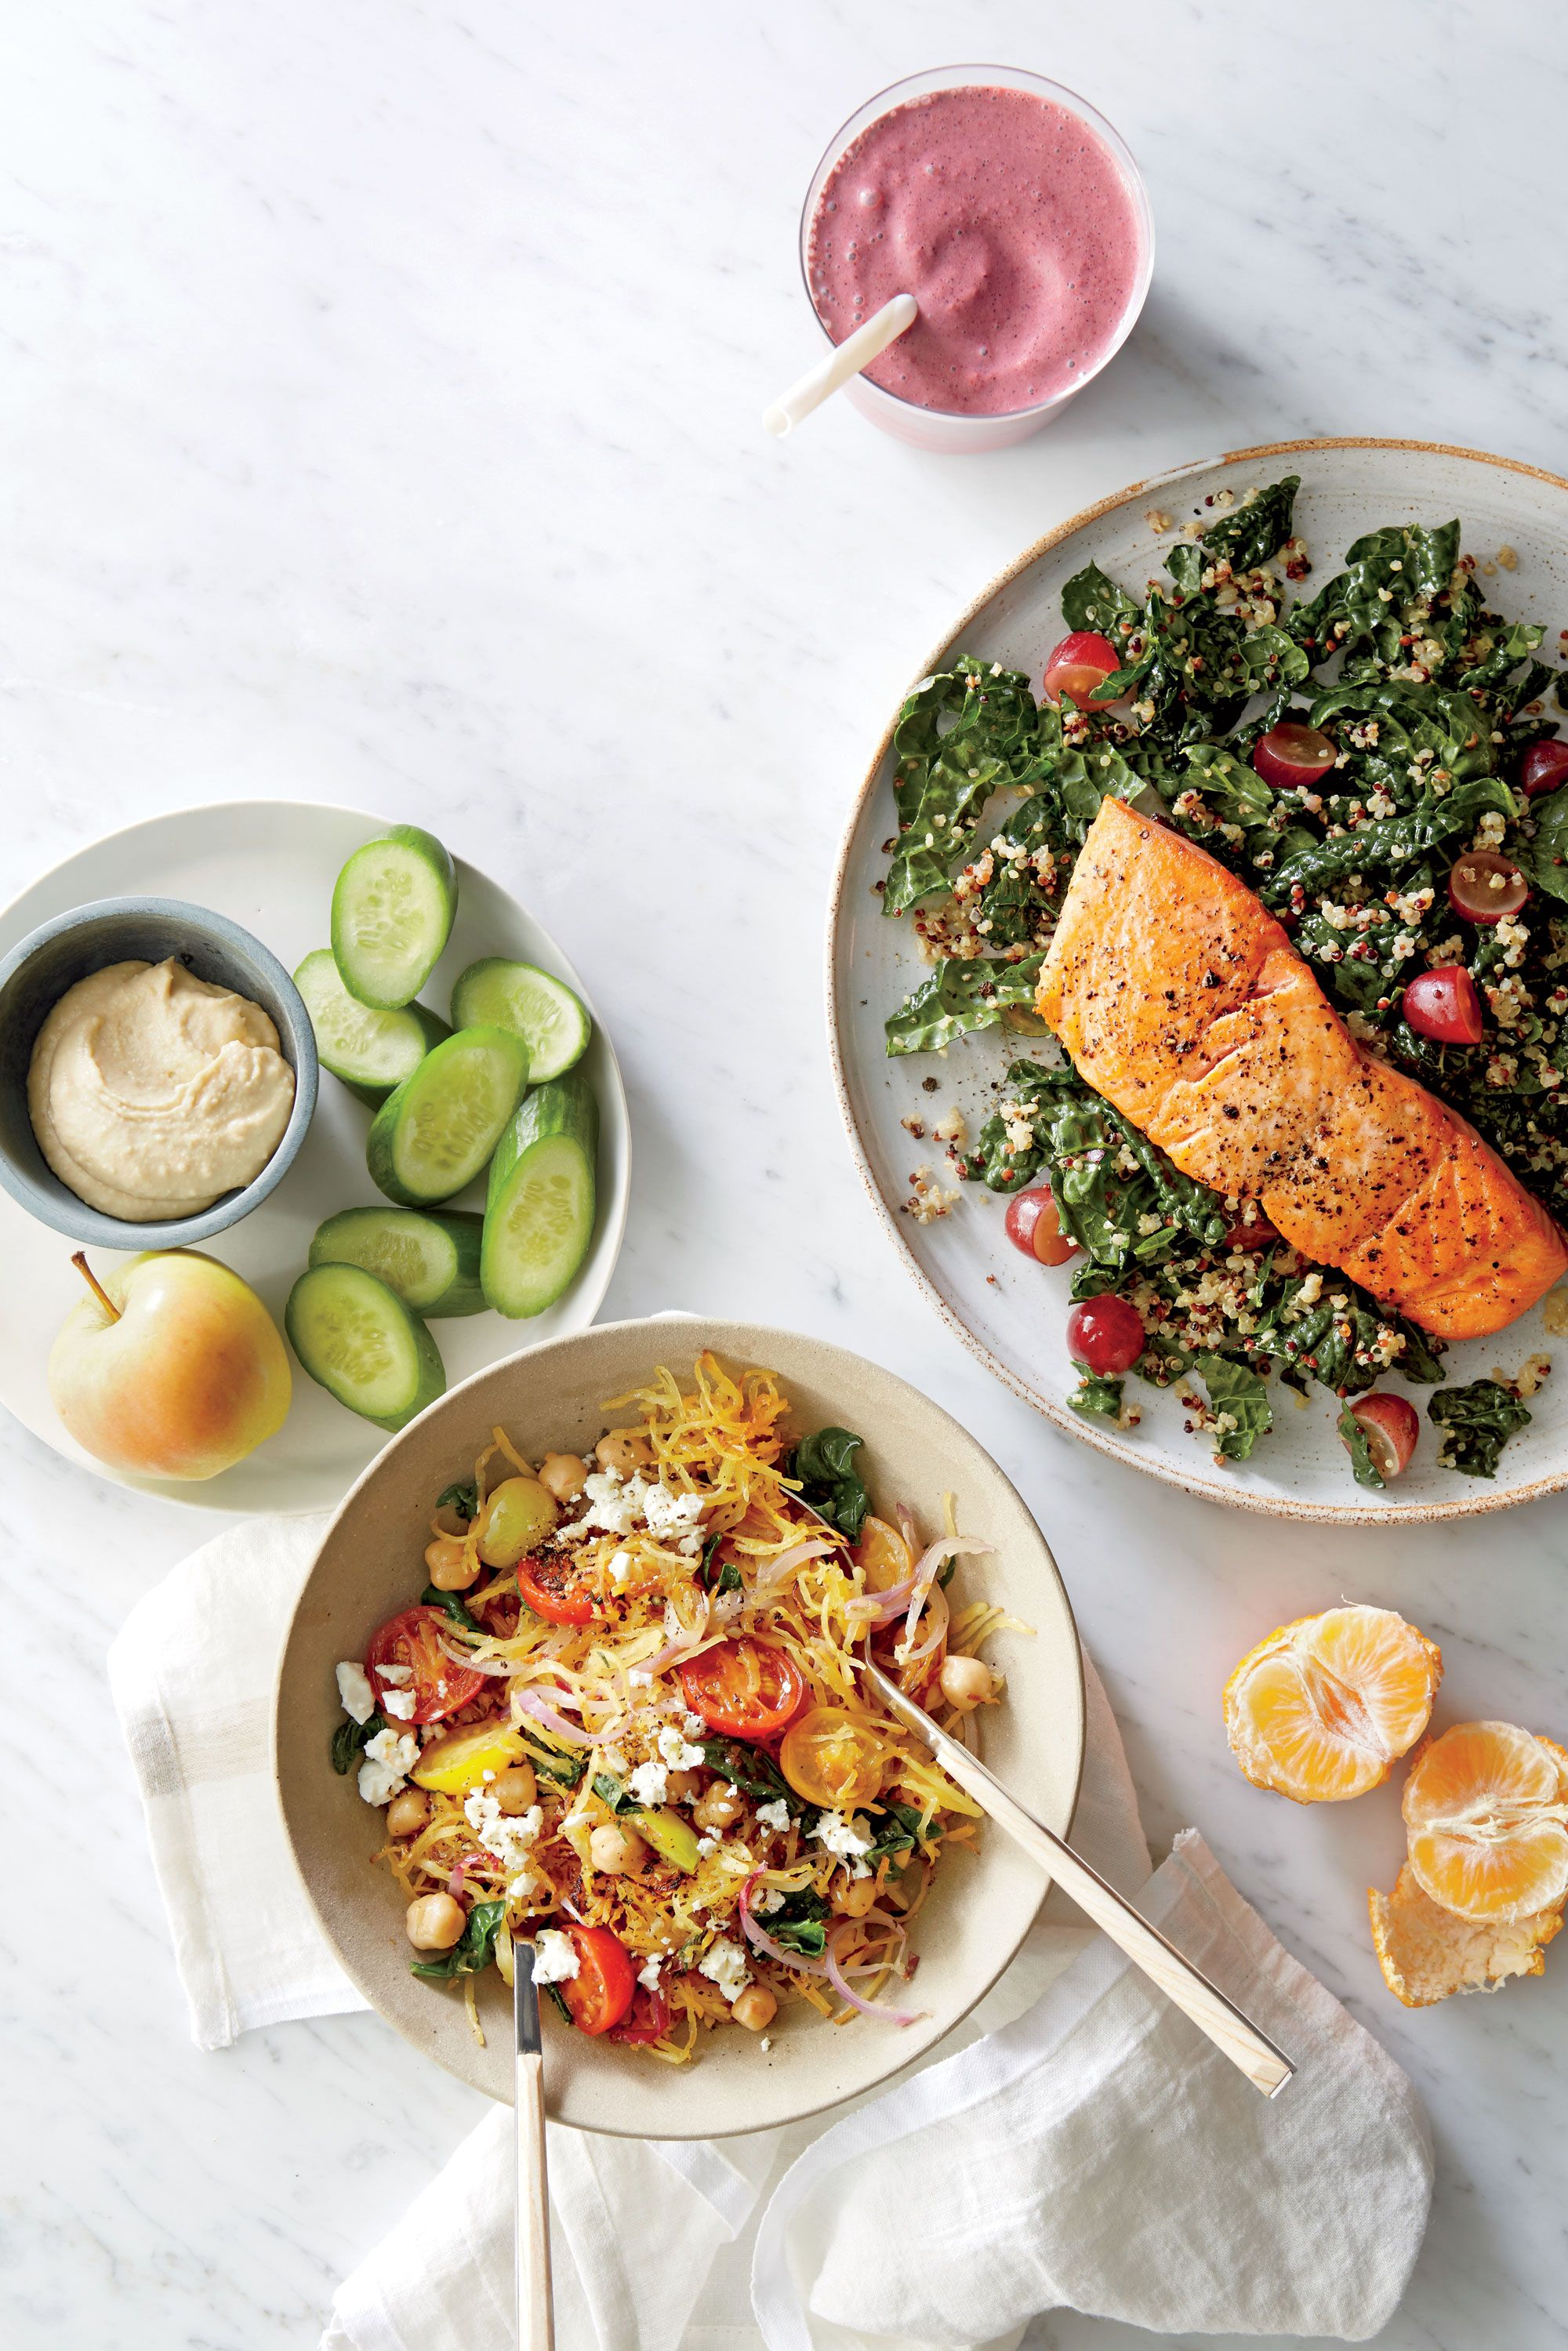 Roasted salmon with kale quinoa salad recipe american heart recipe forumfinder Images